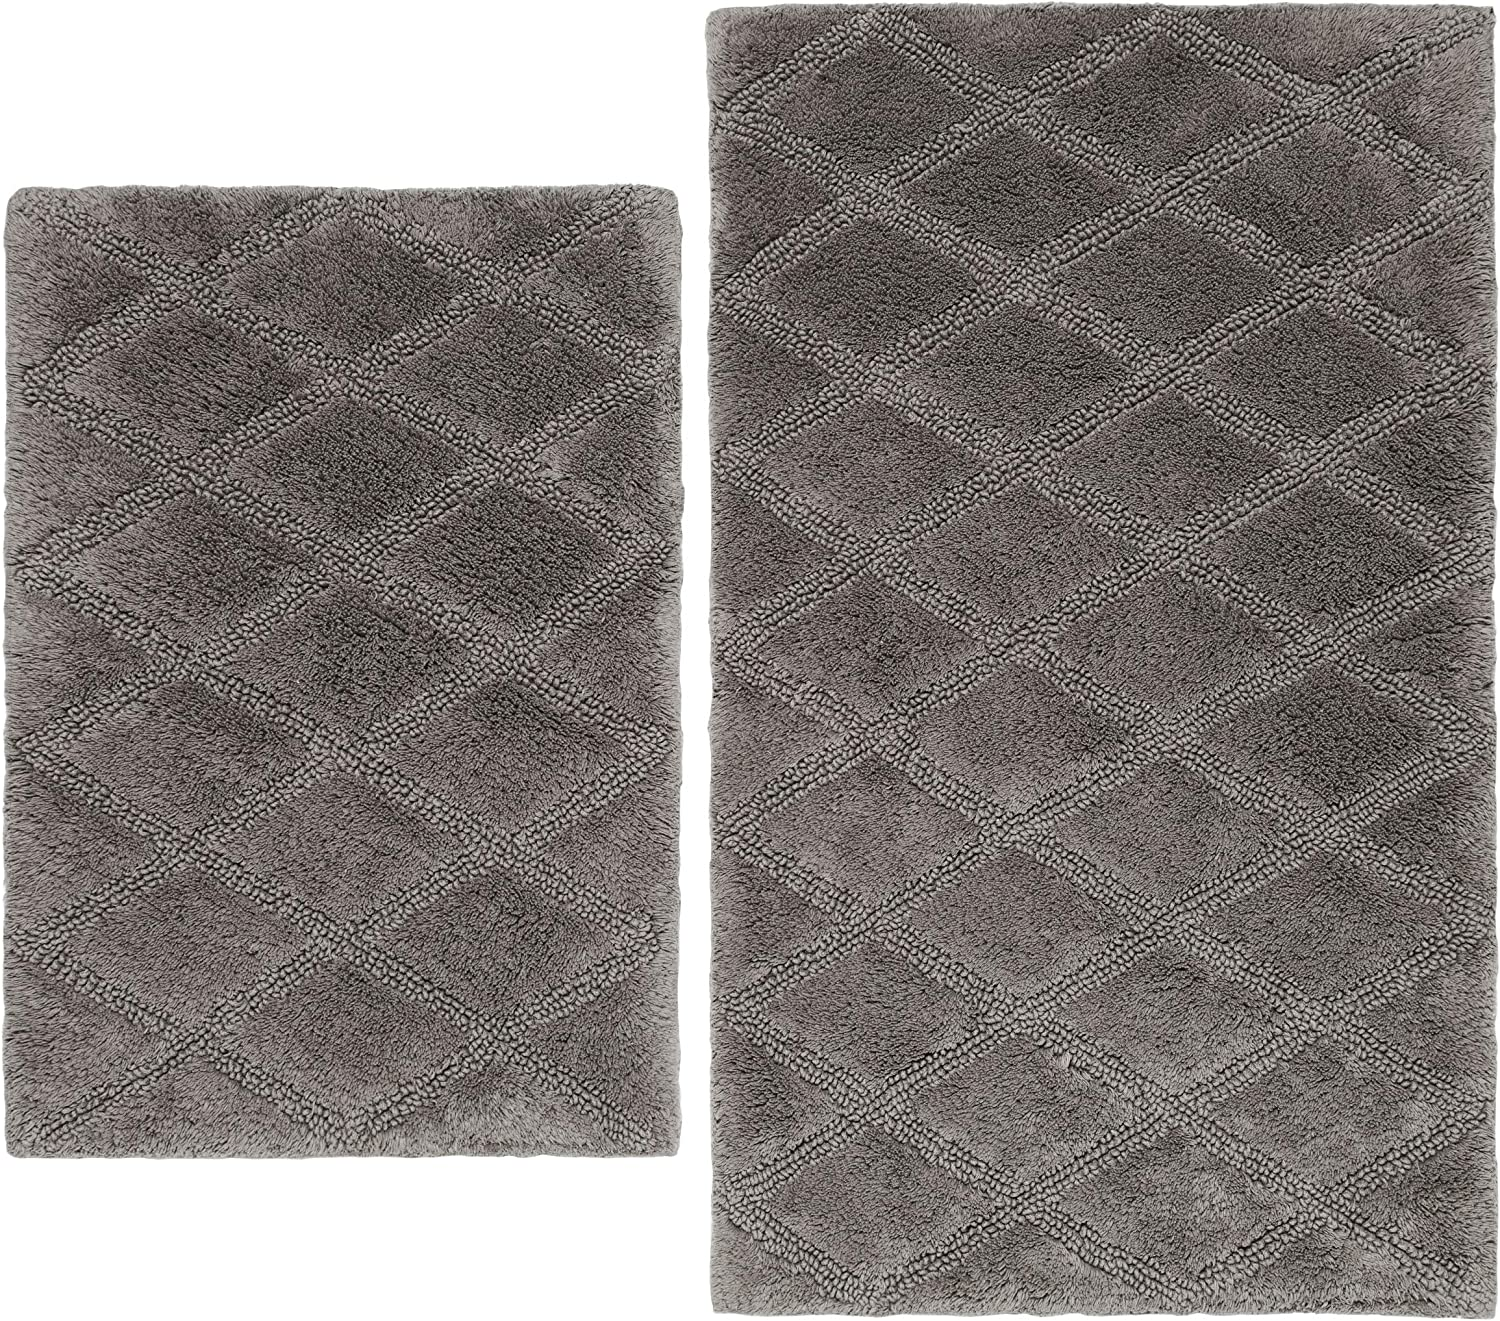 Vera Wang Tufted Discount mail order Diamond Collection Soft Absorbent OFFicial shop Plus and